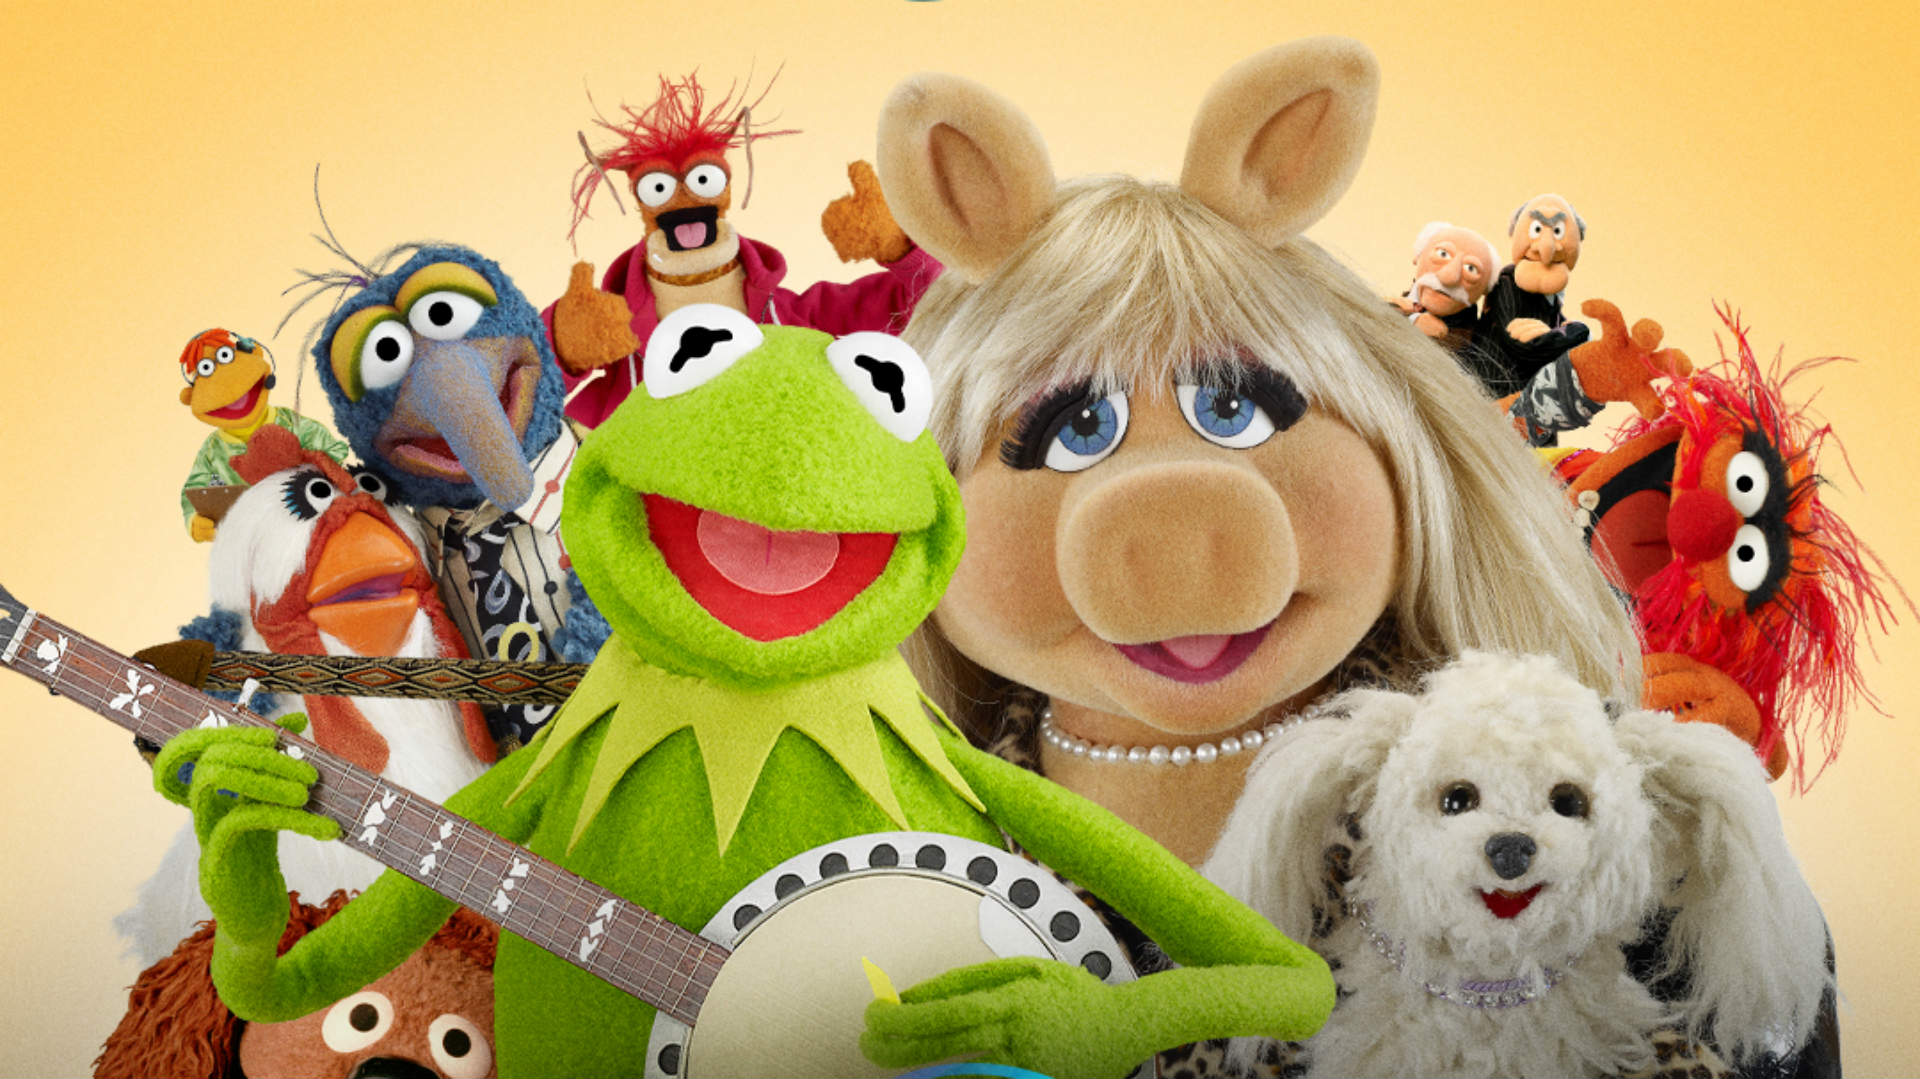 Muppets Now: New Unscripted Muppets Series Arrives on Disney+ This Summer